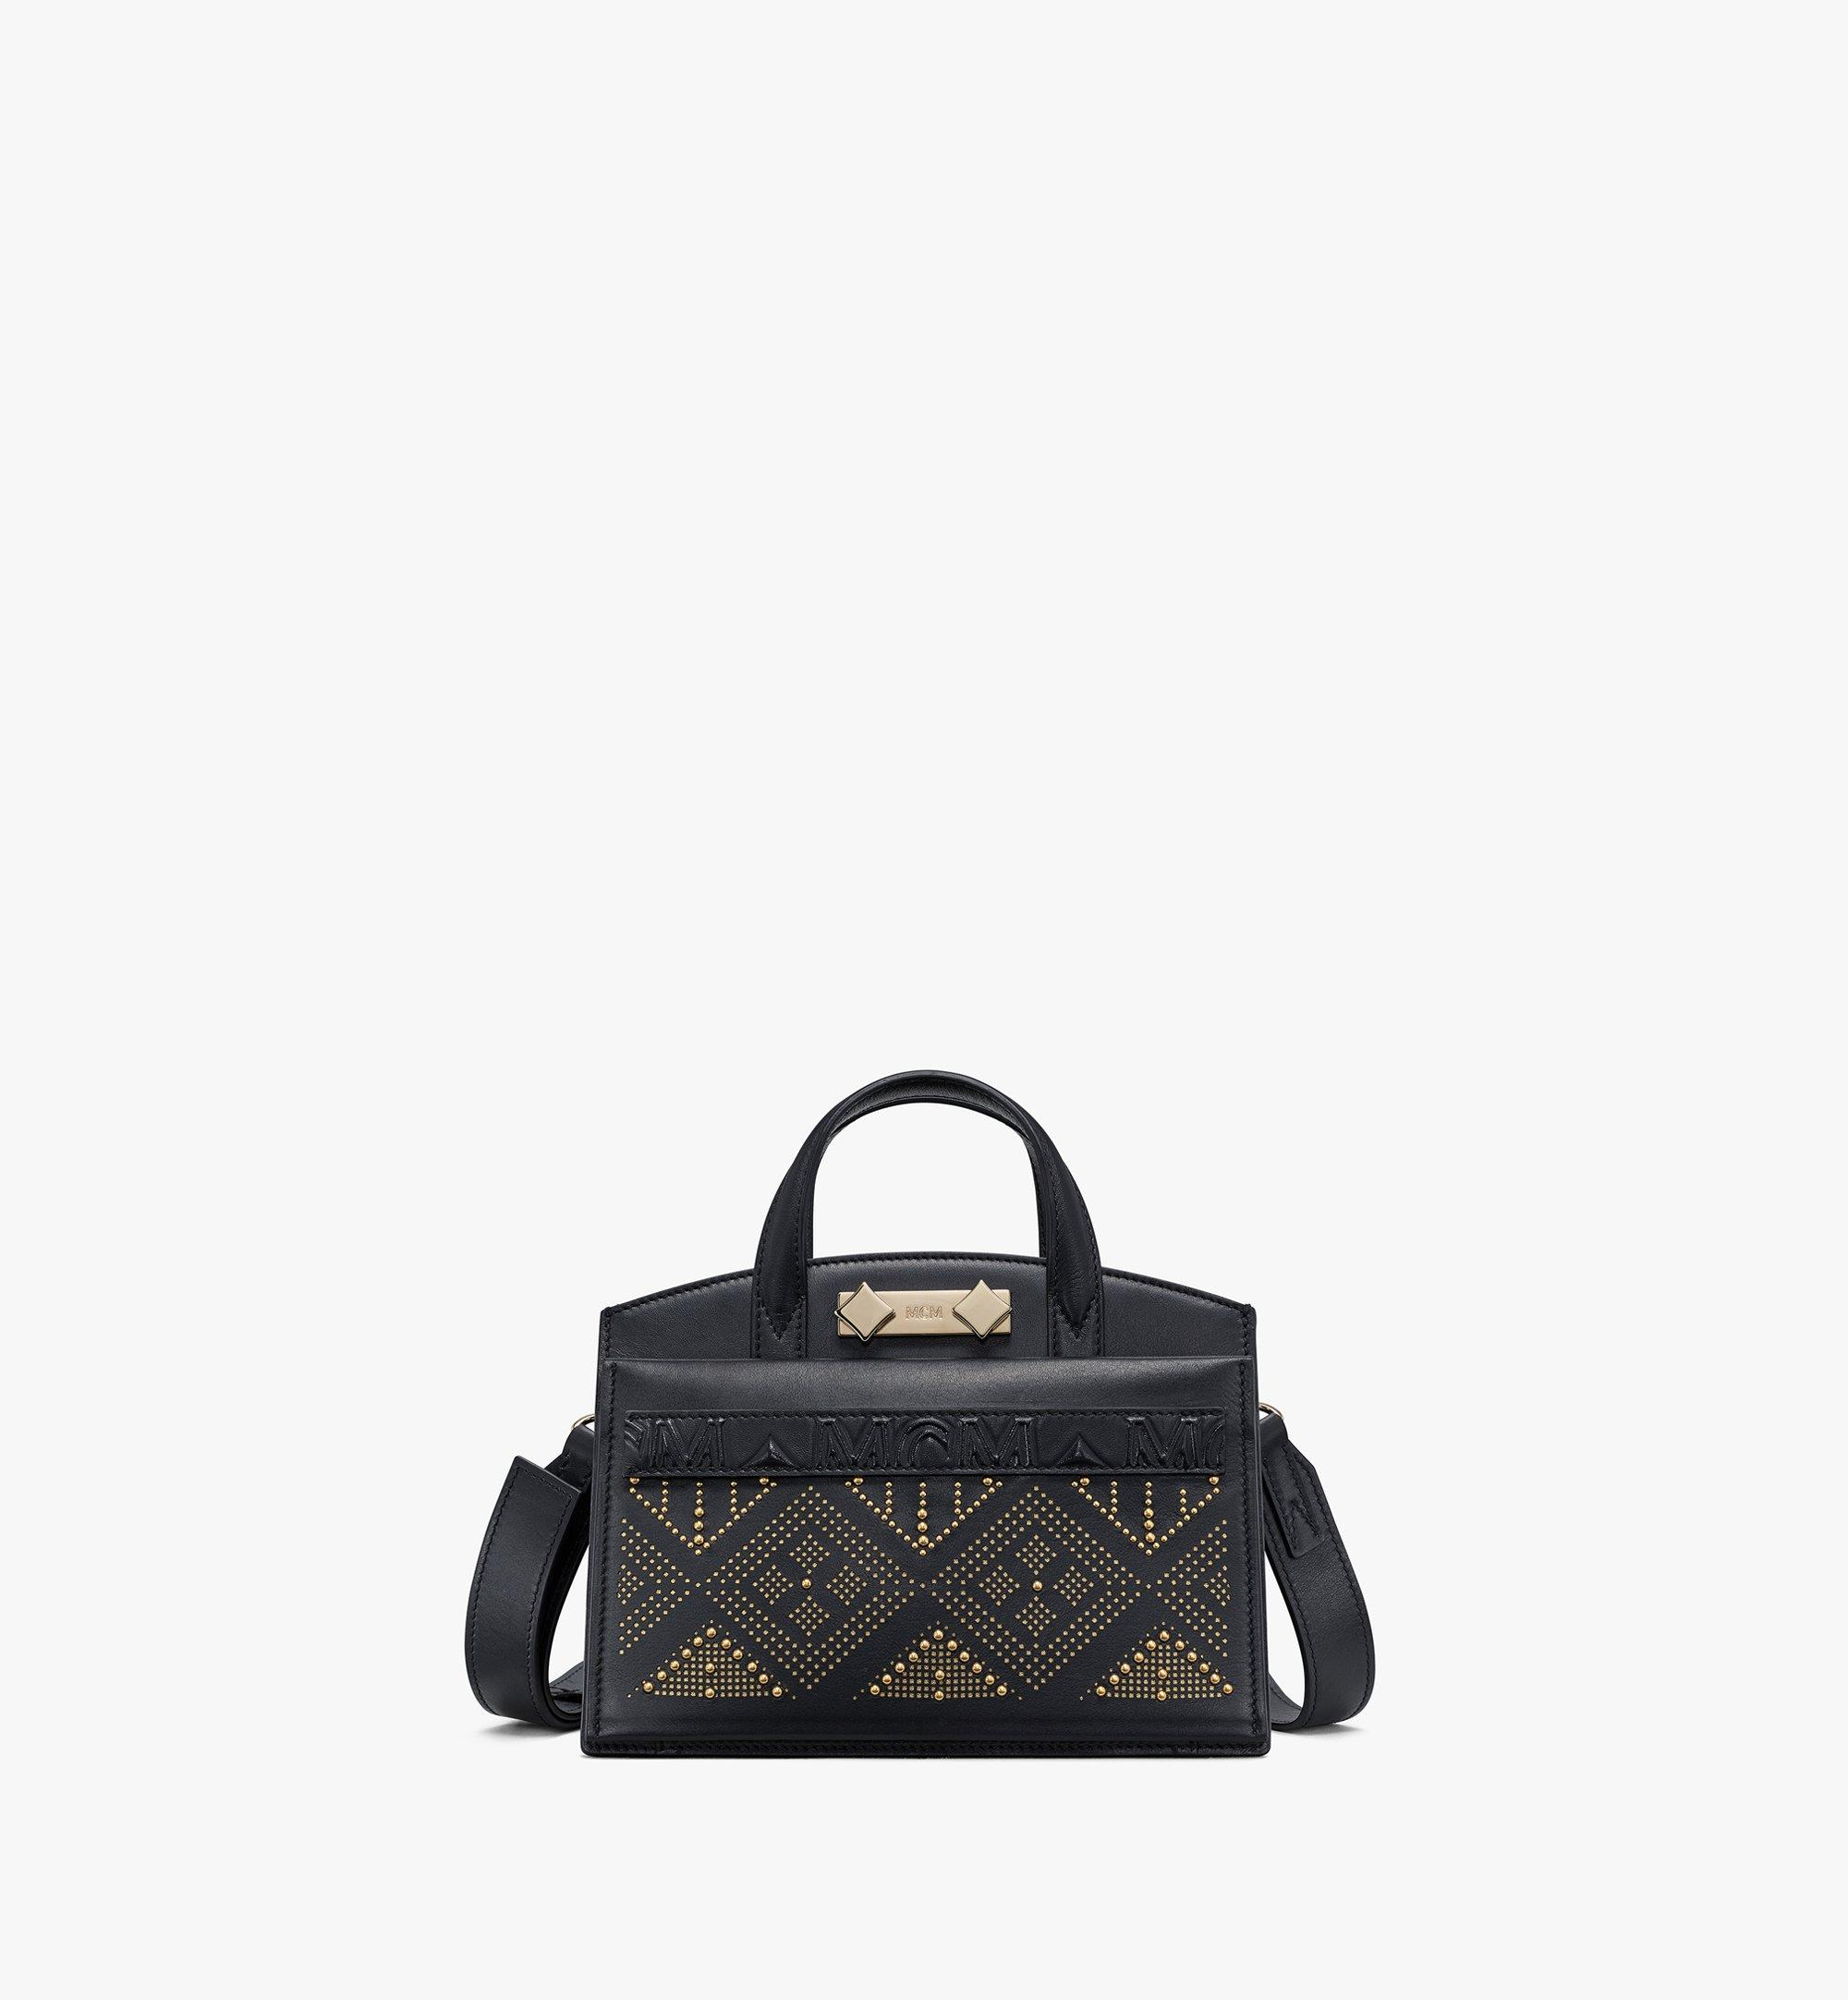 MCM Milano Lux Tote in Studded Leather Black MWTAADA04BK001 Alternate View 1